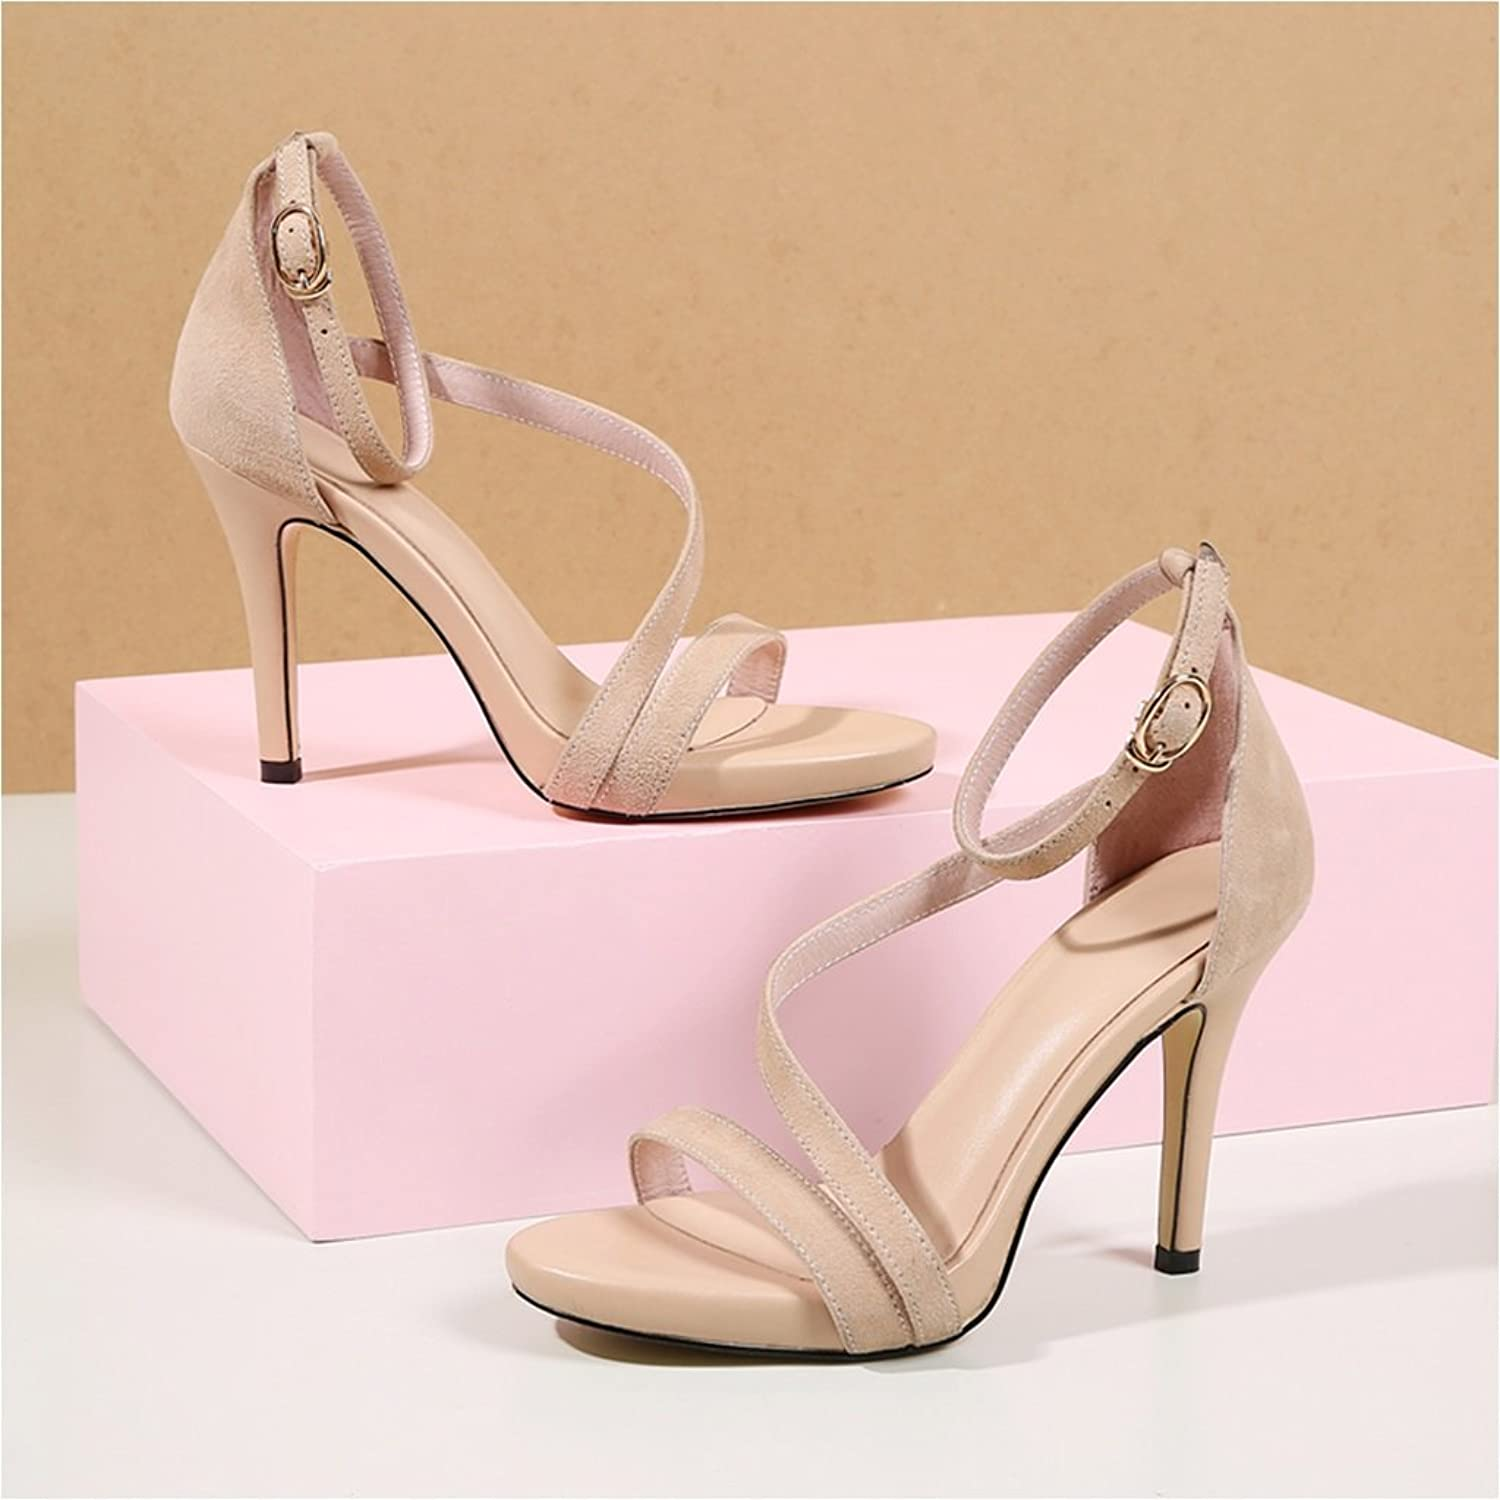 Sexy Fashion high Heels sandals Female Summer New sandals Simple Word Buckle Leather Roman shoes (high 10cm) (color   Beige, Size   34)